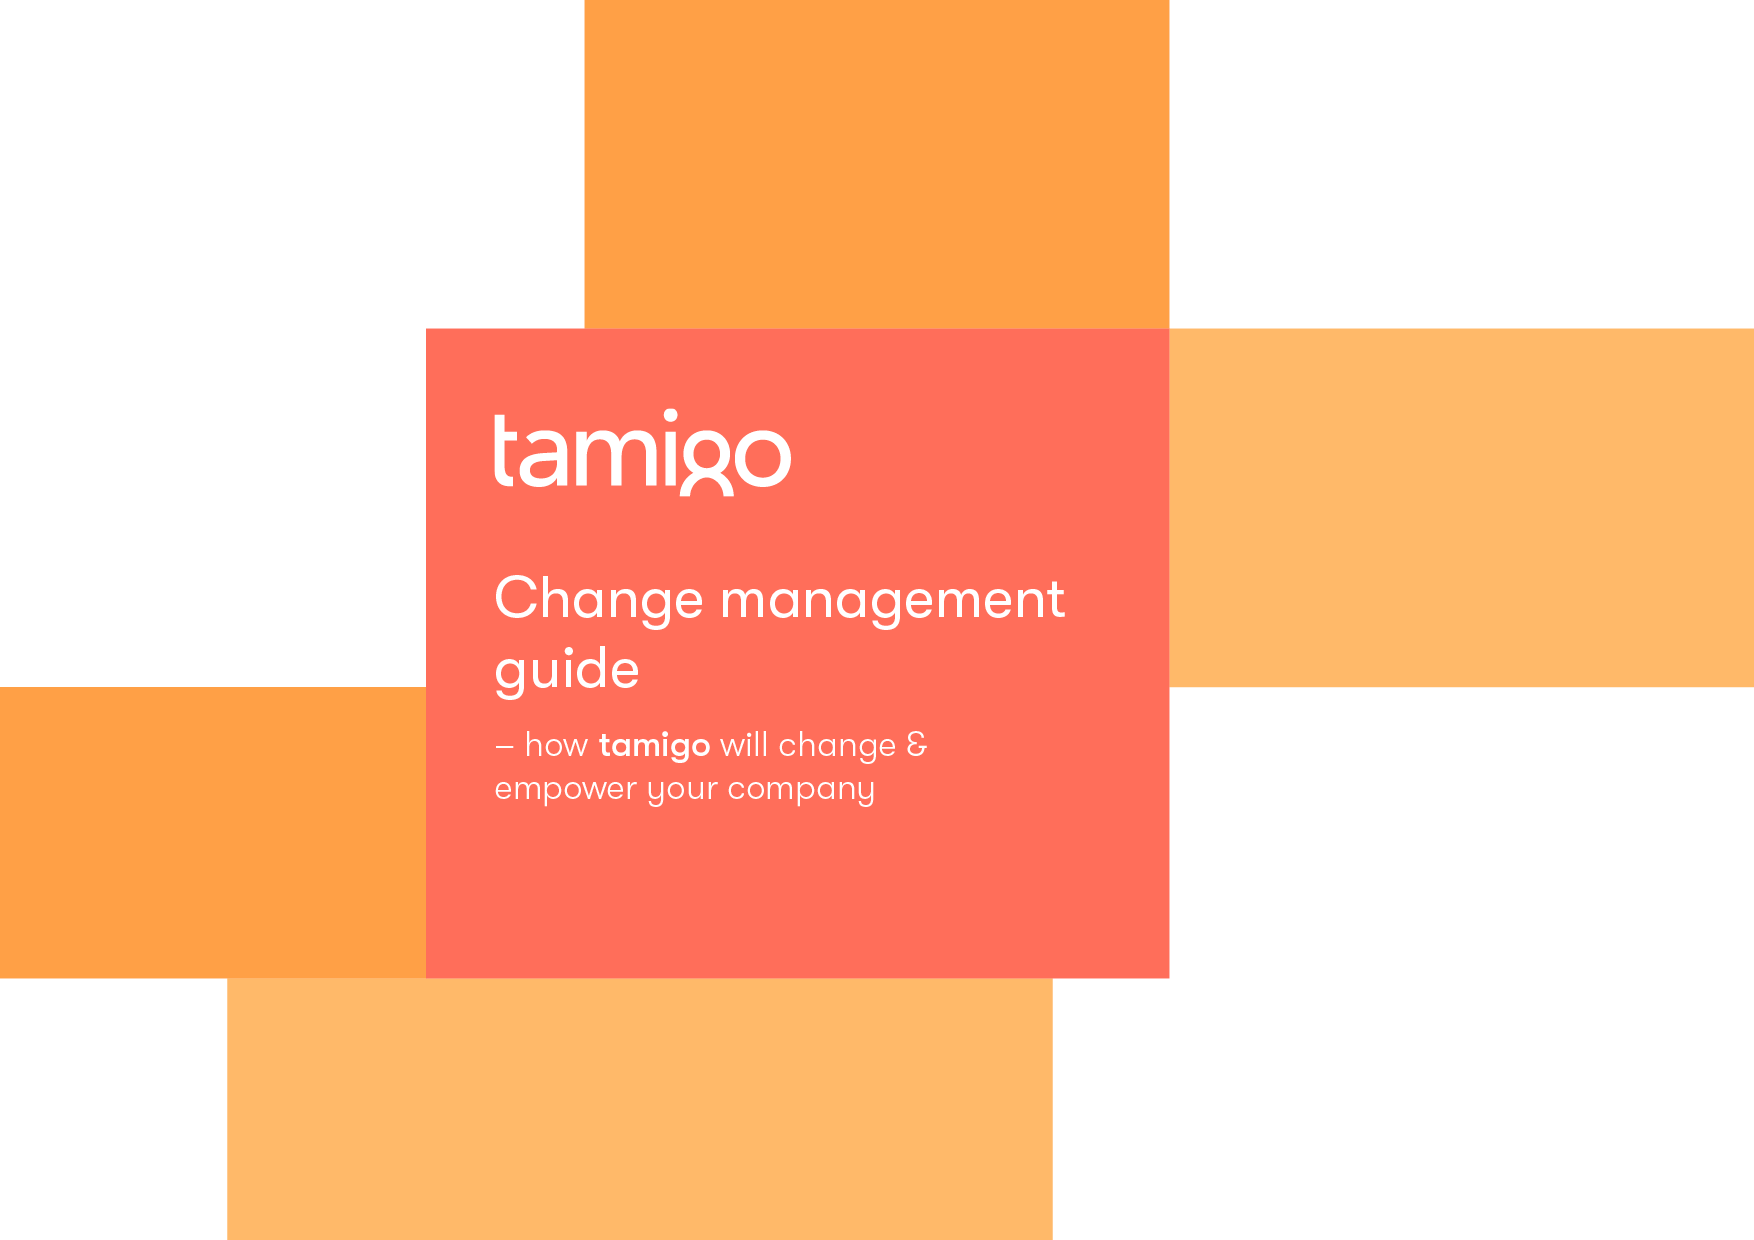 tamigo Change Management Guide picture